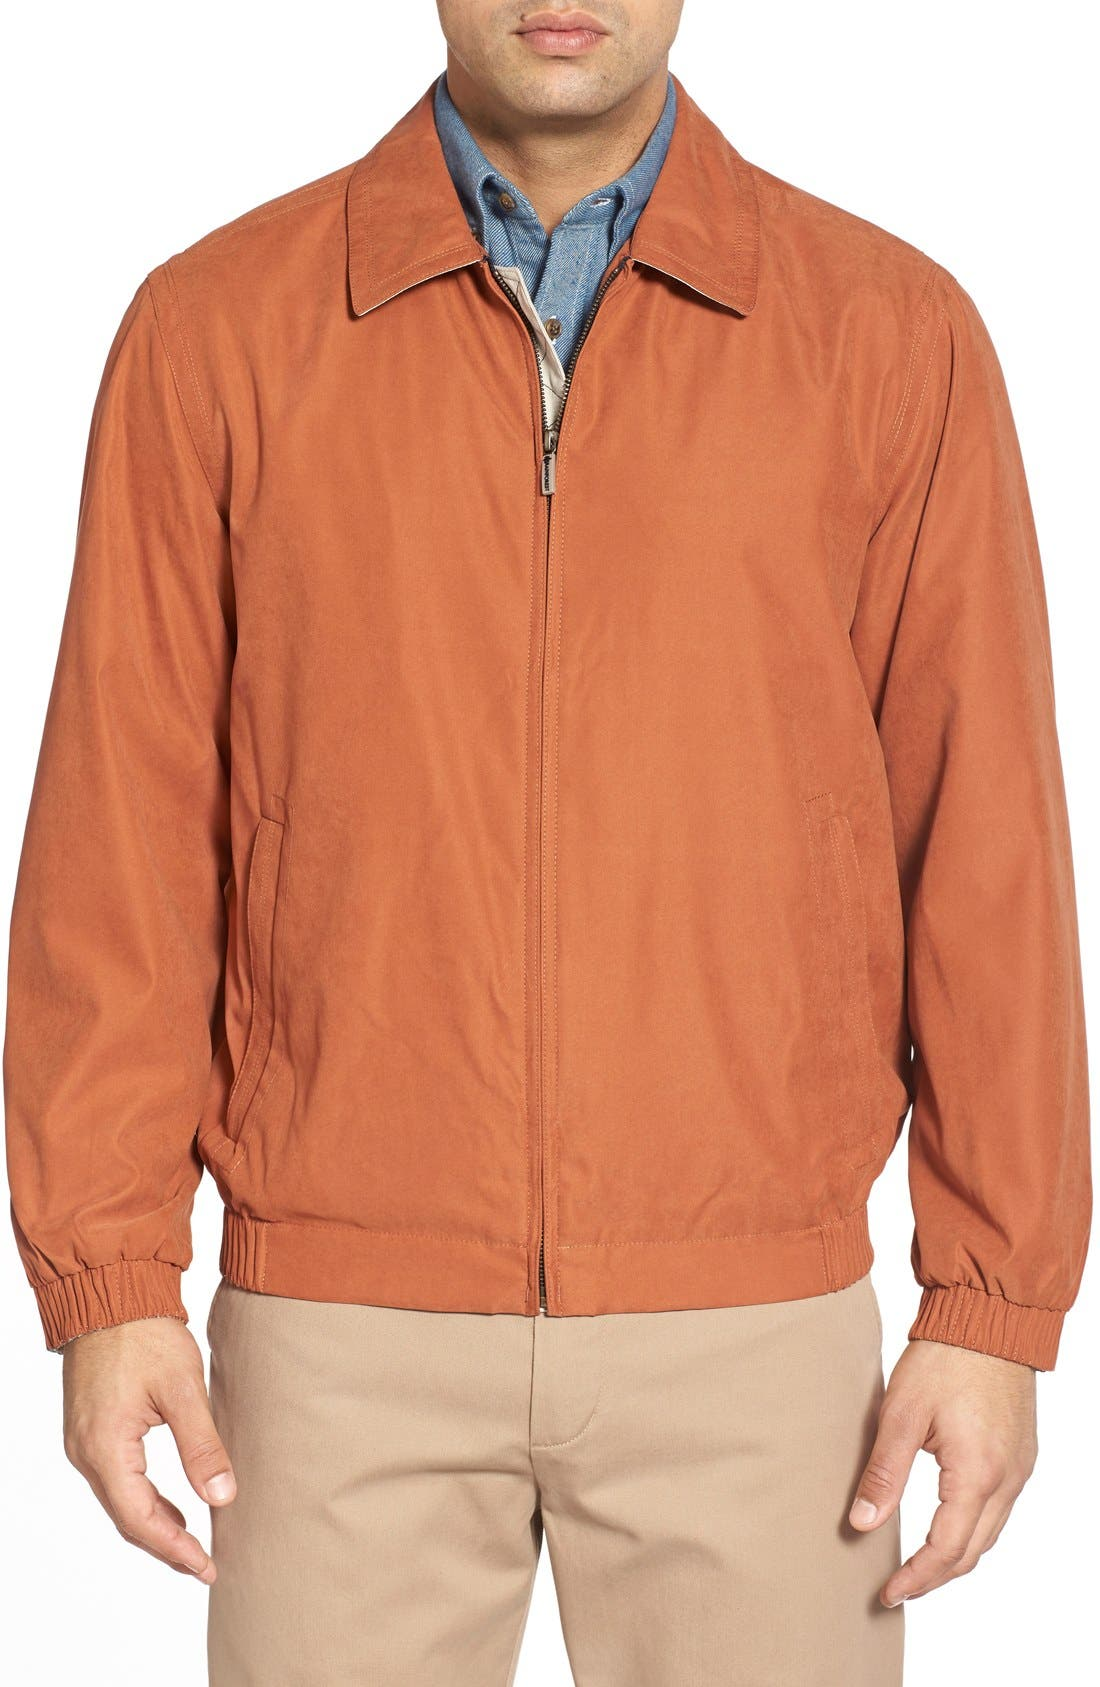 'Microseta' Lightweight Golf Jacket,                             Main thumbnail 11, color,